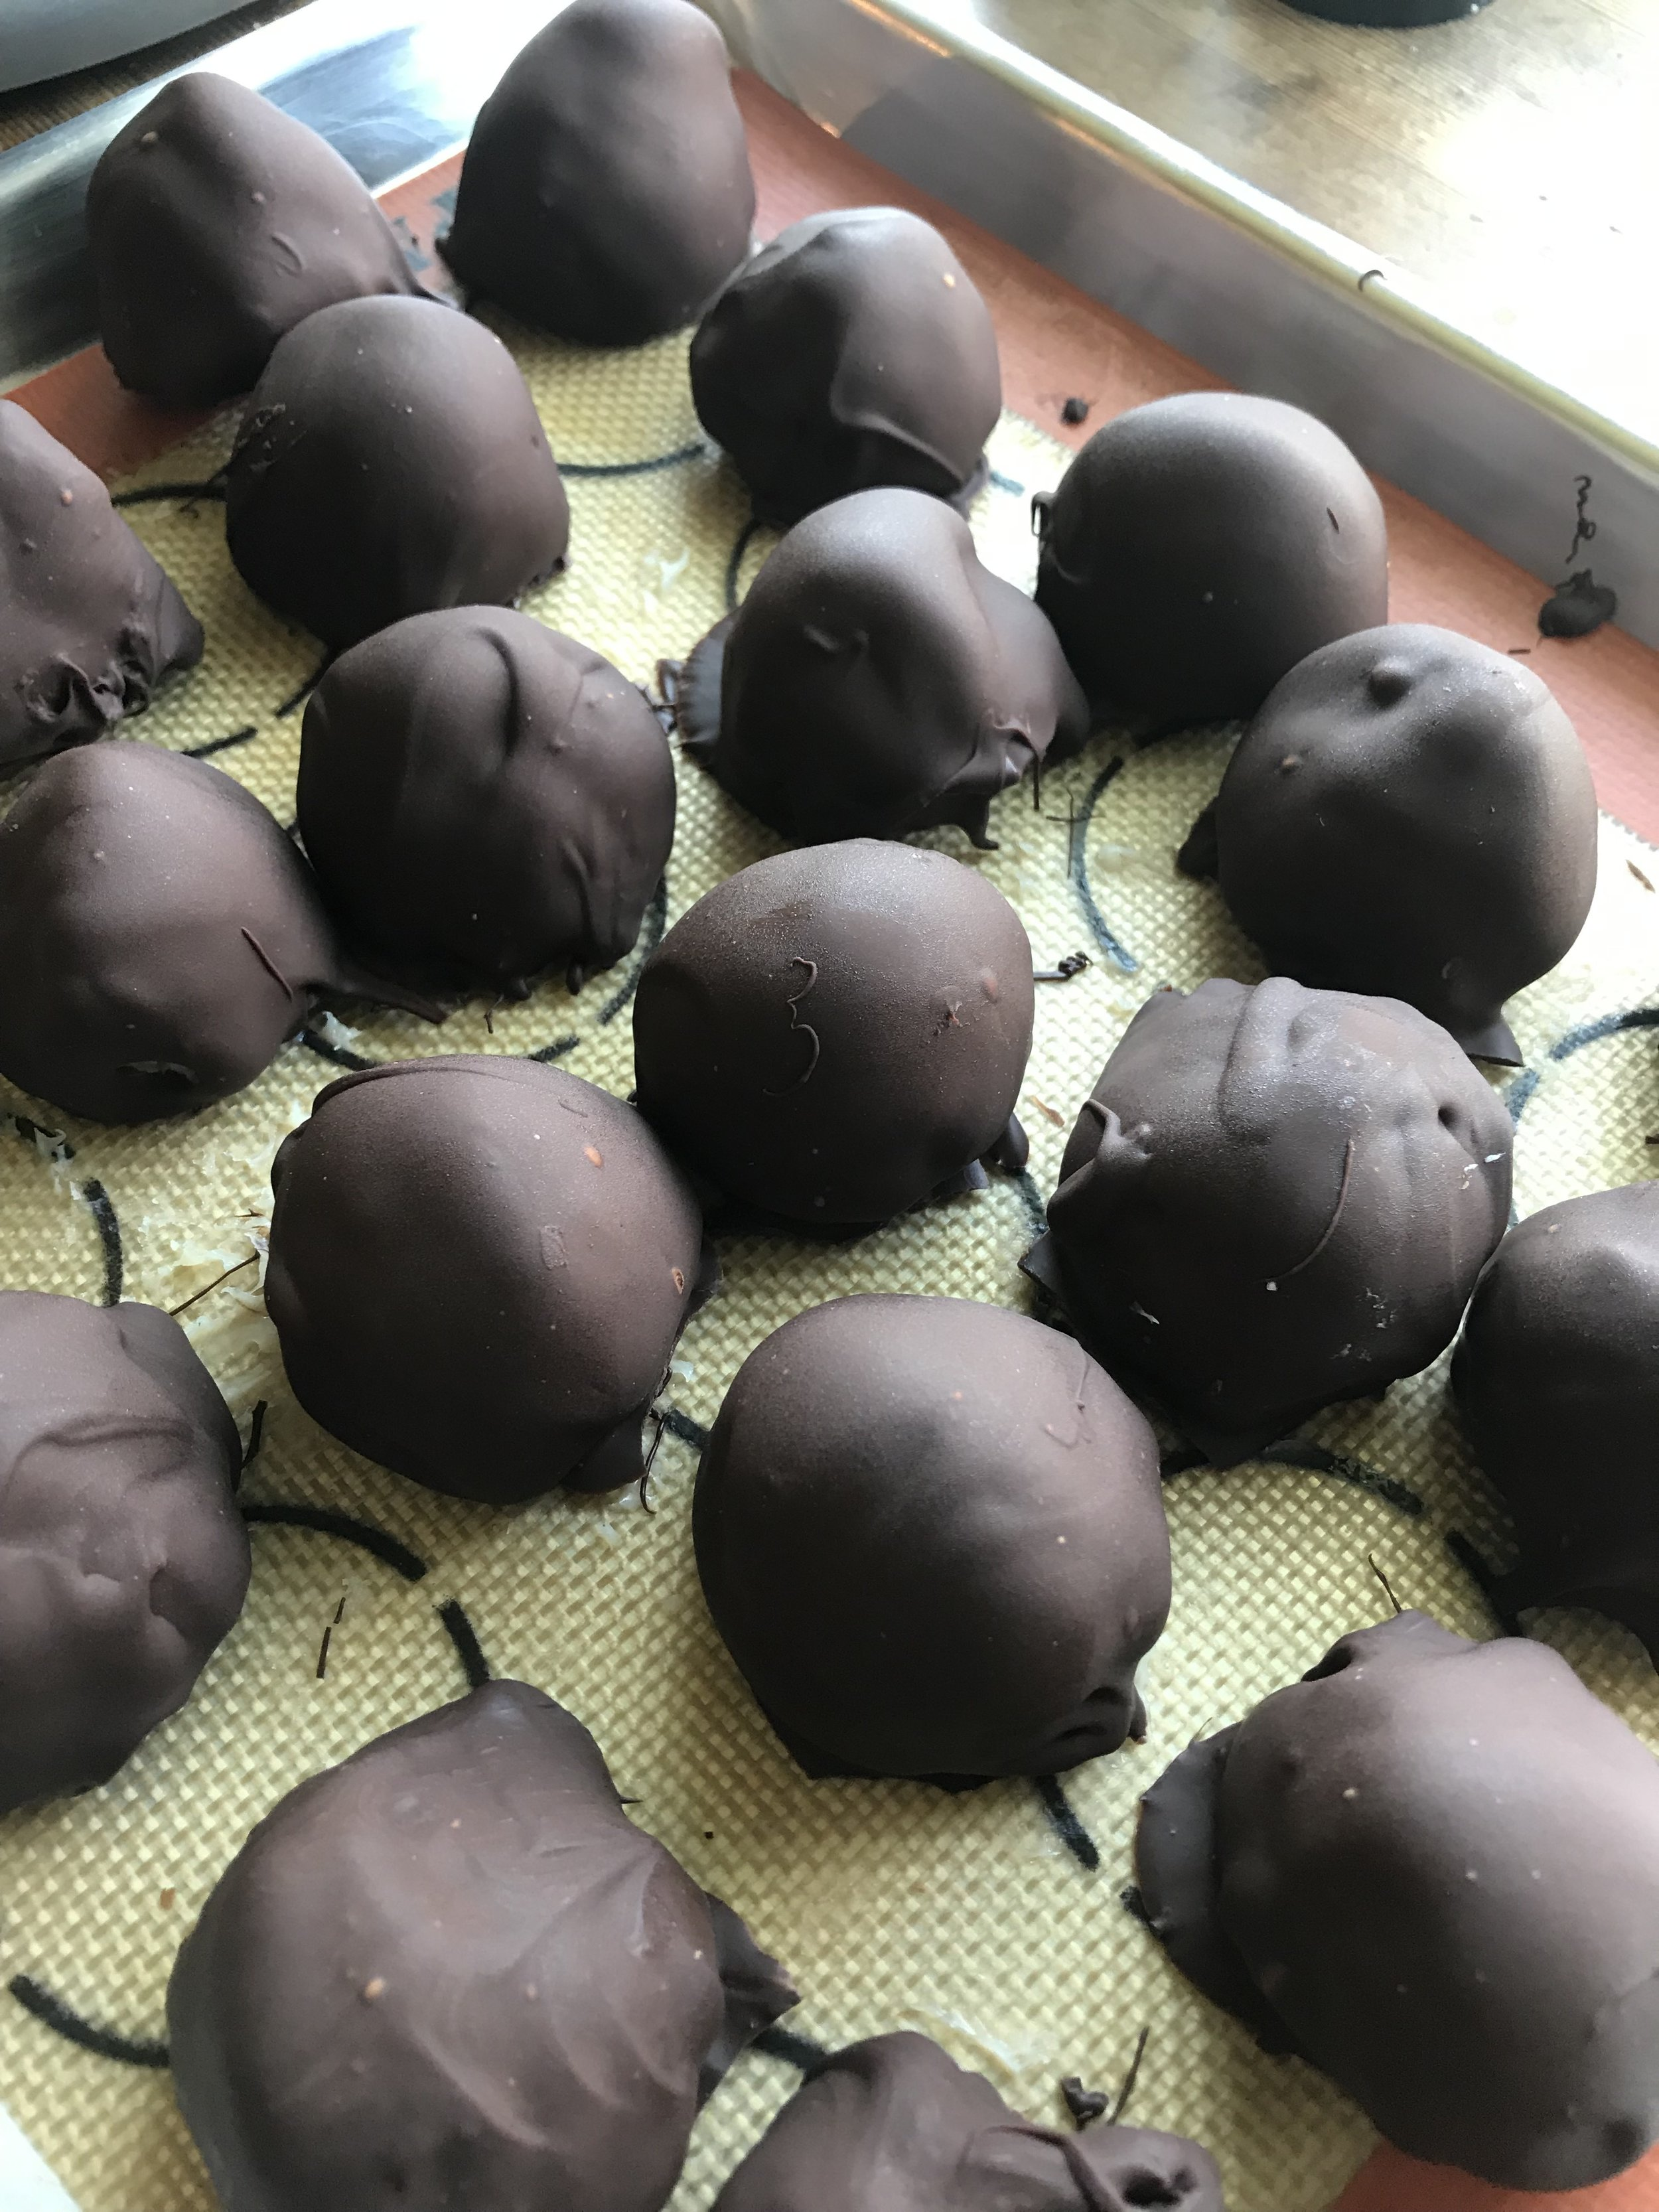 The tempered chocolate has such a lovely snap and texture to it.